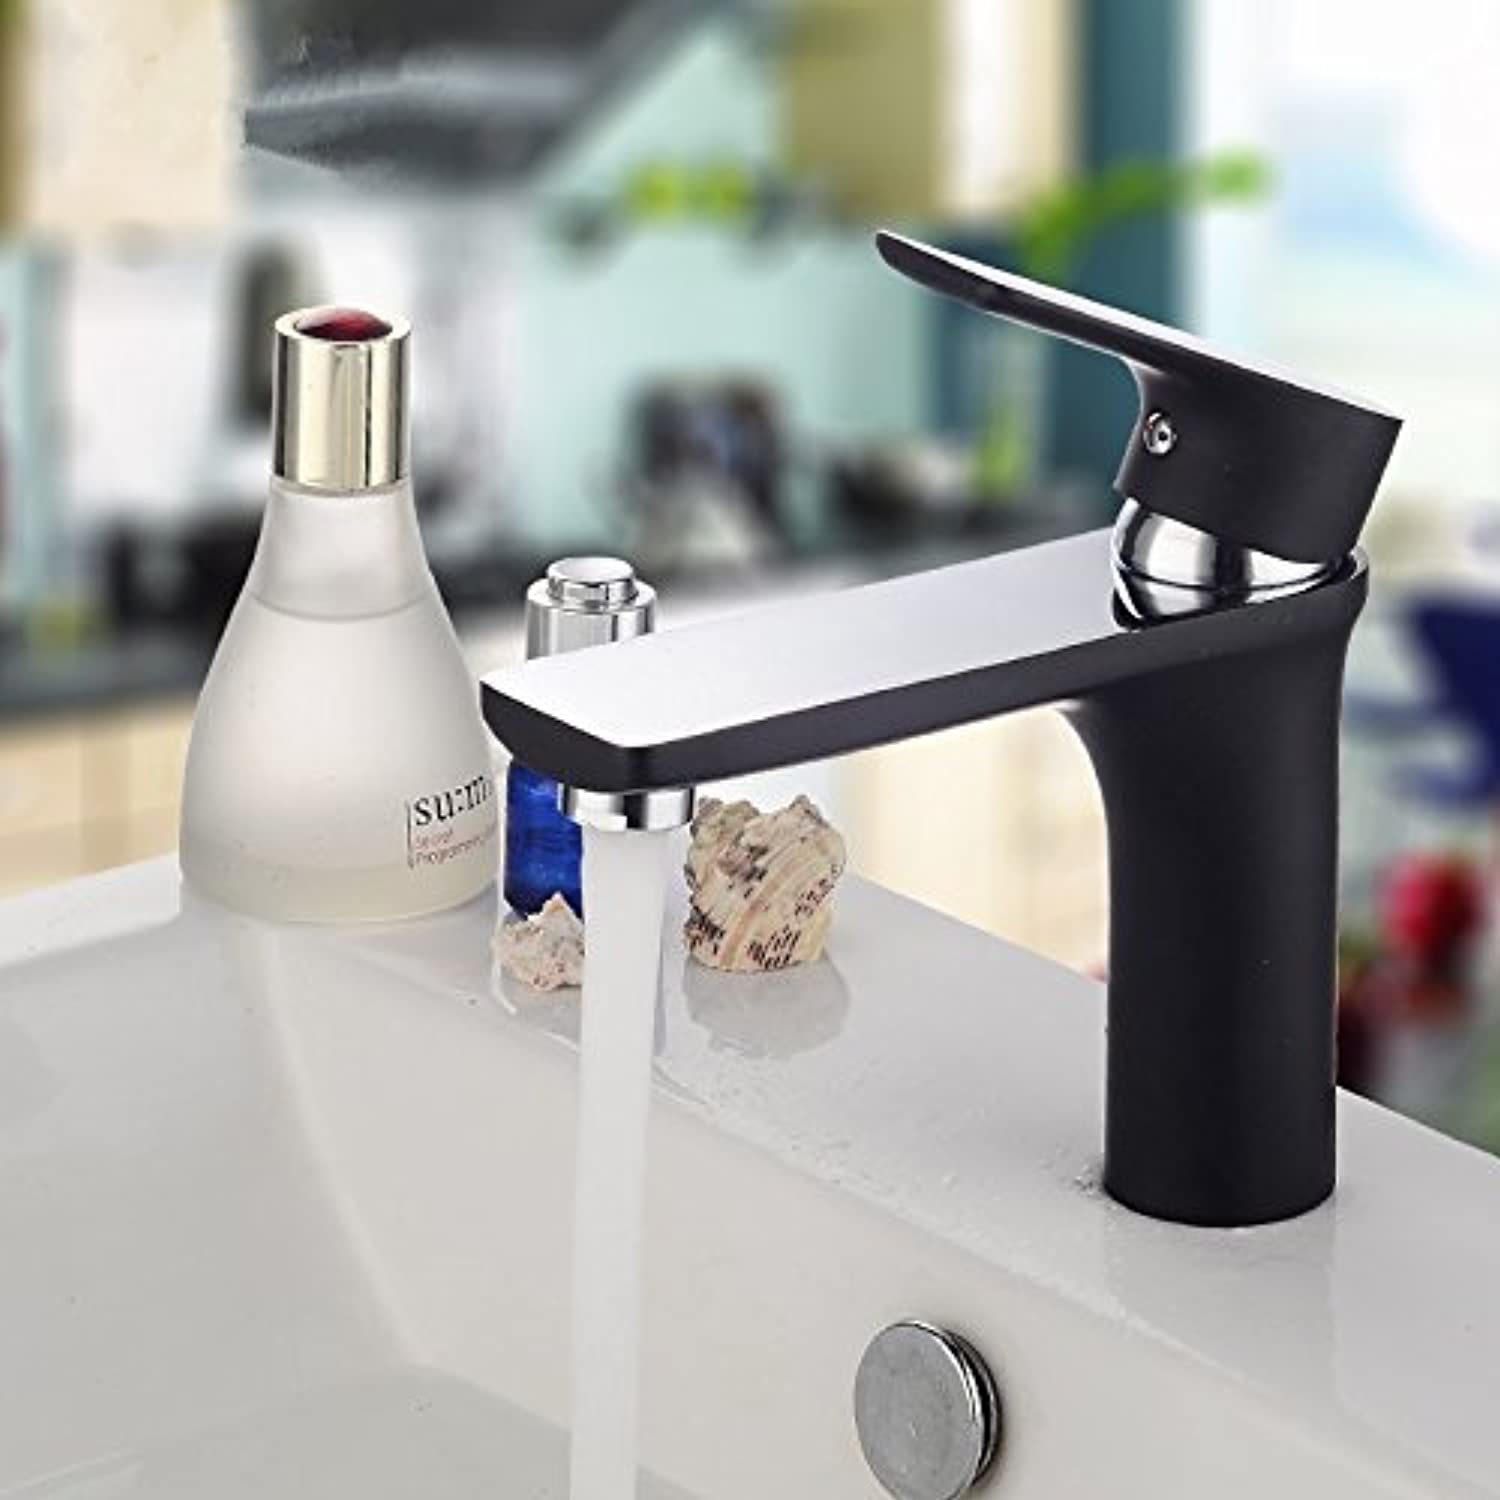 Deck Assembled in Rigid Brass wash Basin Mixer with Single Hand wash Basin tap Antique Black Bathroom Fittings